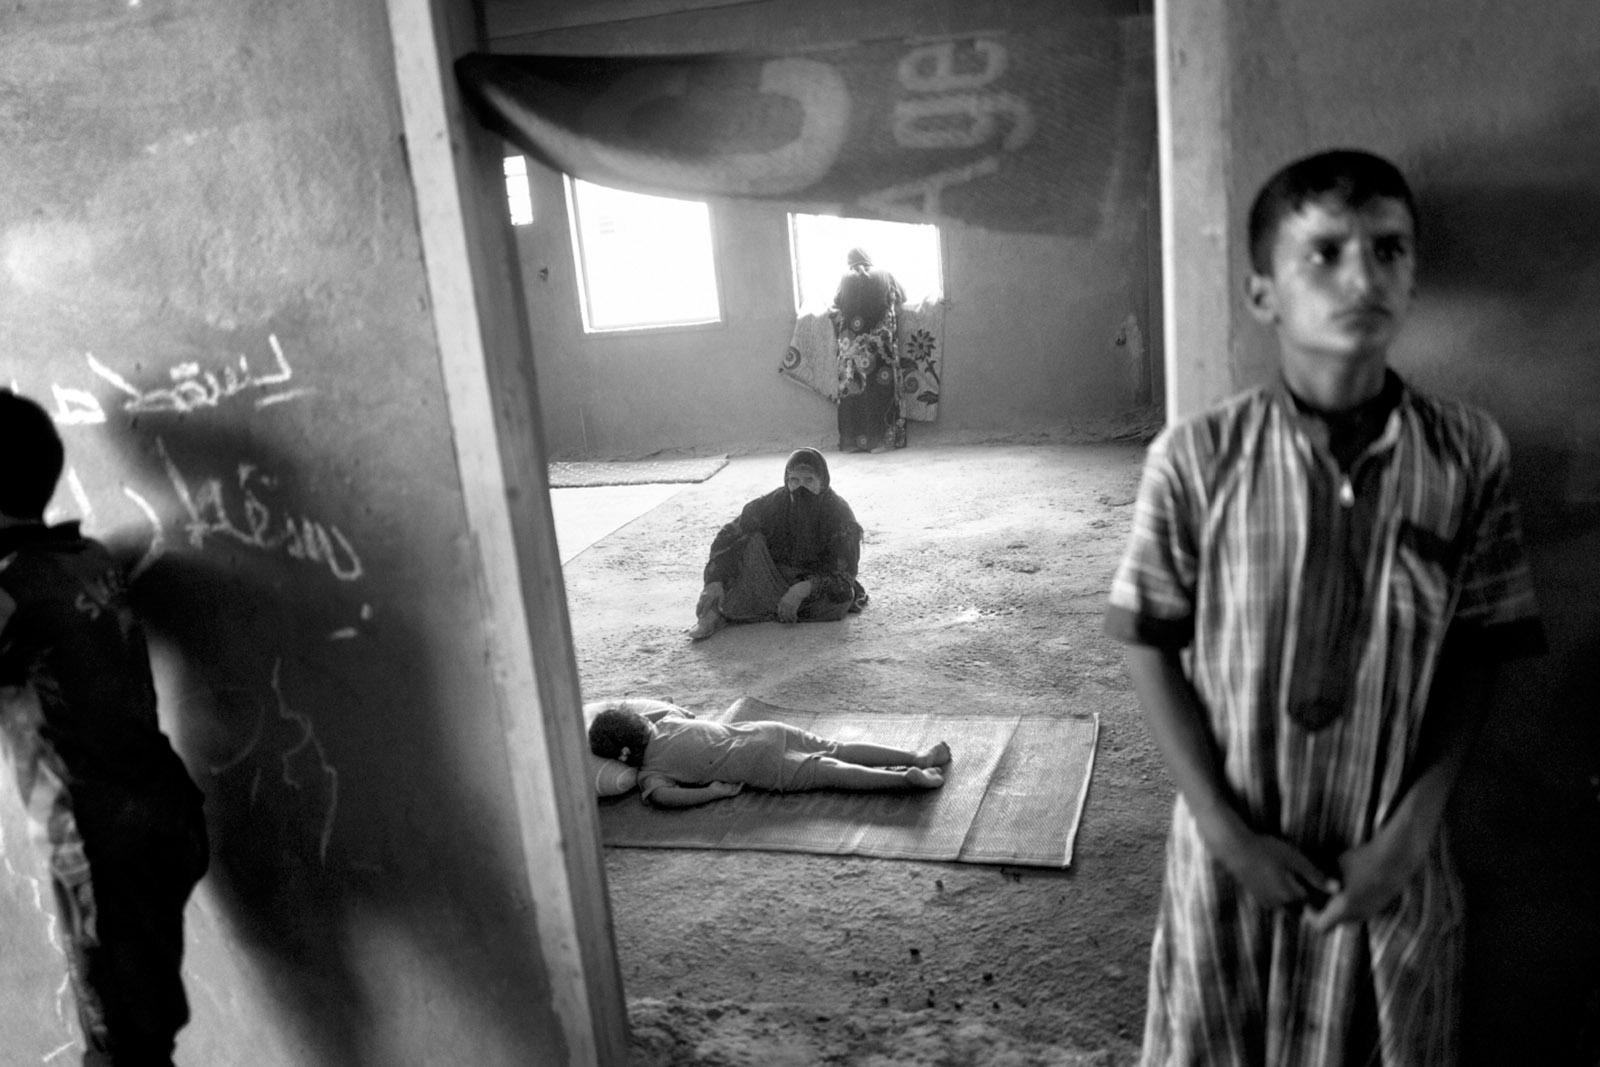 Internally displaced Iraqis taking refuge in an unfinished apartment complex in Tikrit after escaping from ISIS-controlled Shirqat, July 2016